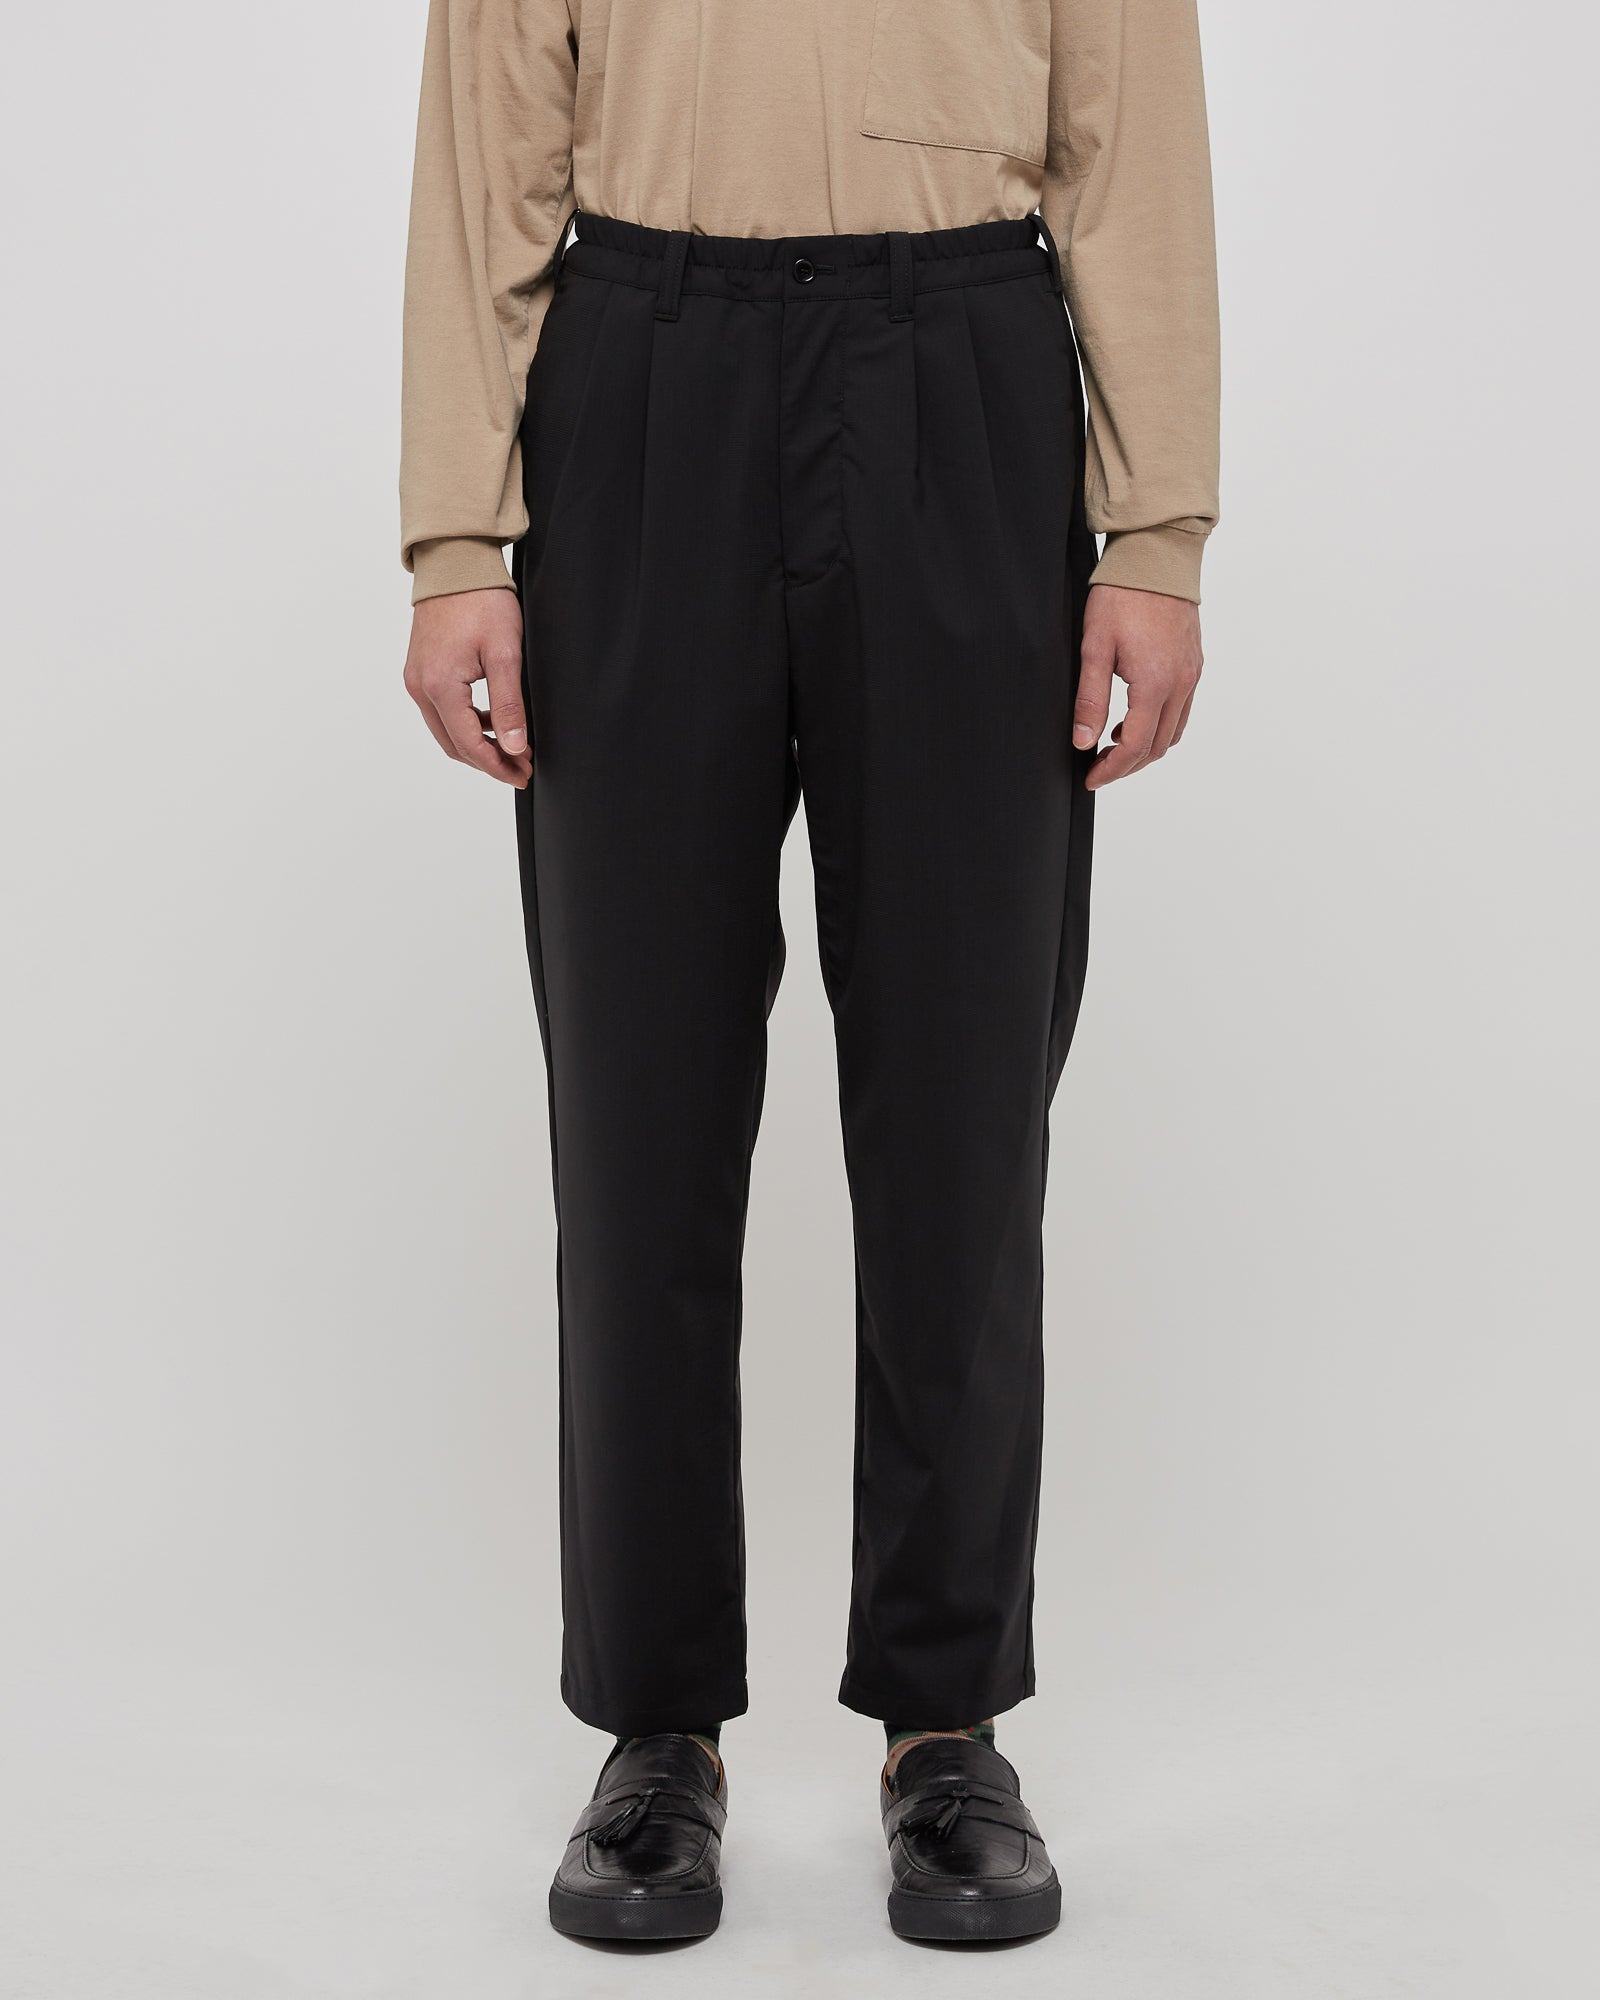 Regular Tapered Pants in Black Check